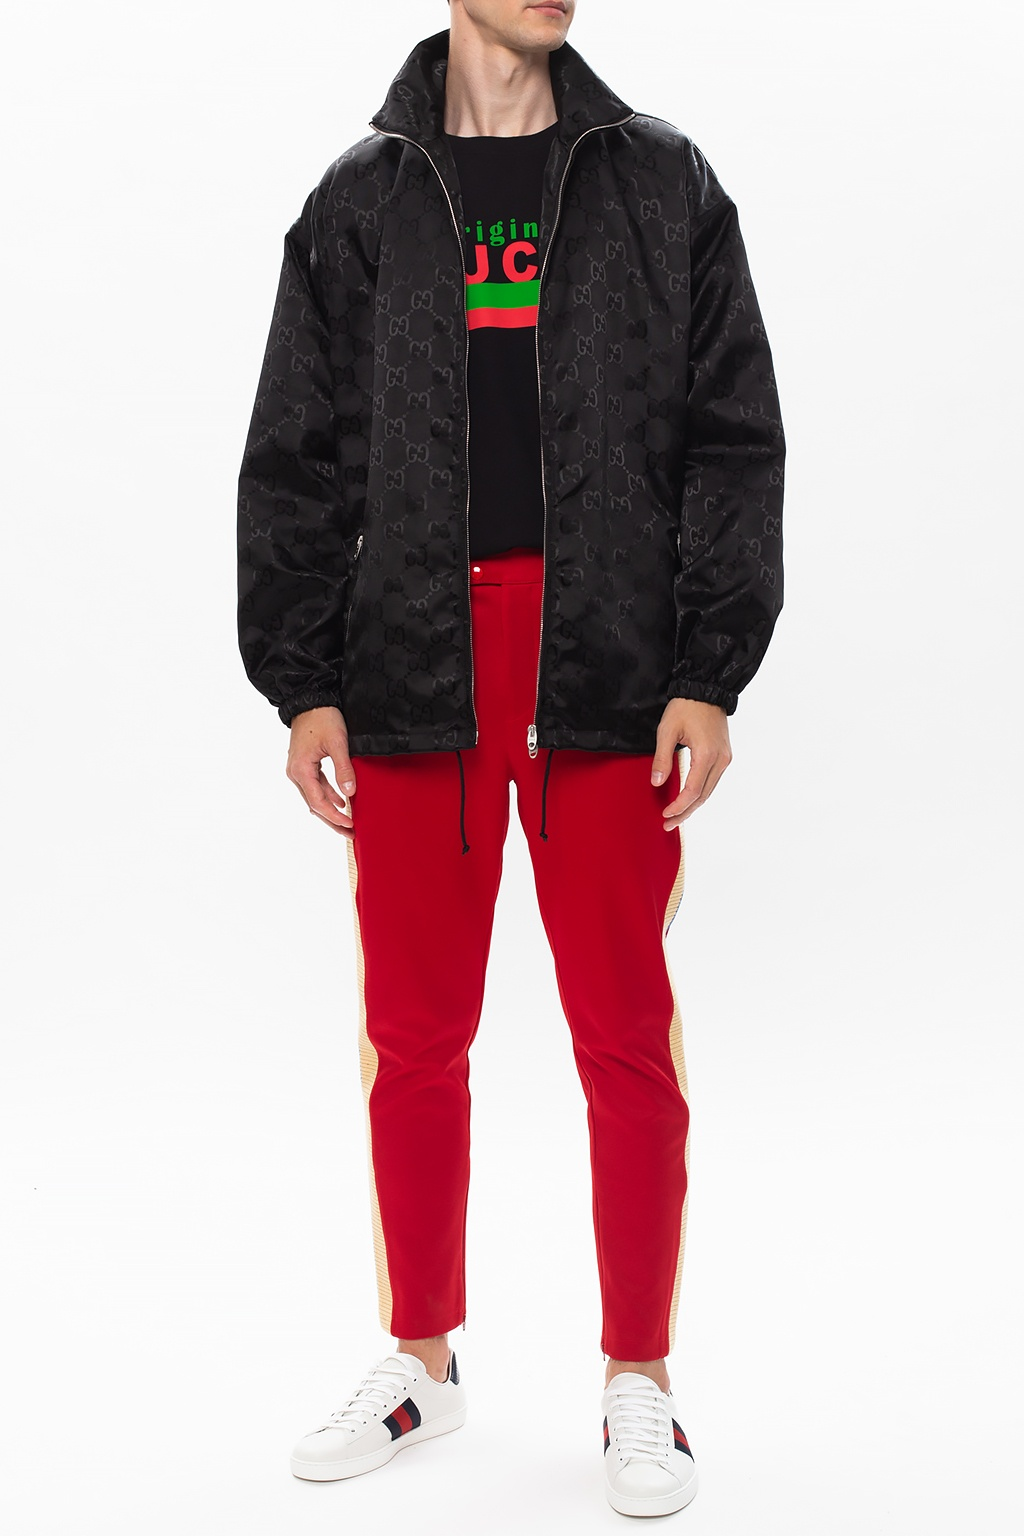 Gucci Logo trousers